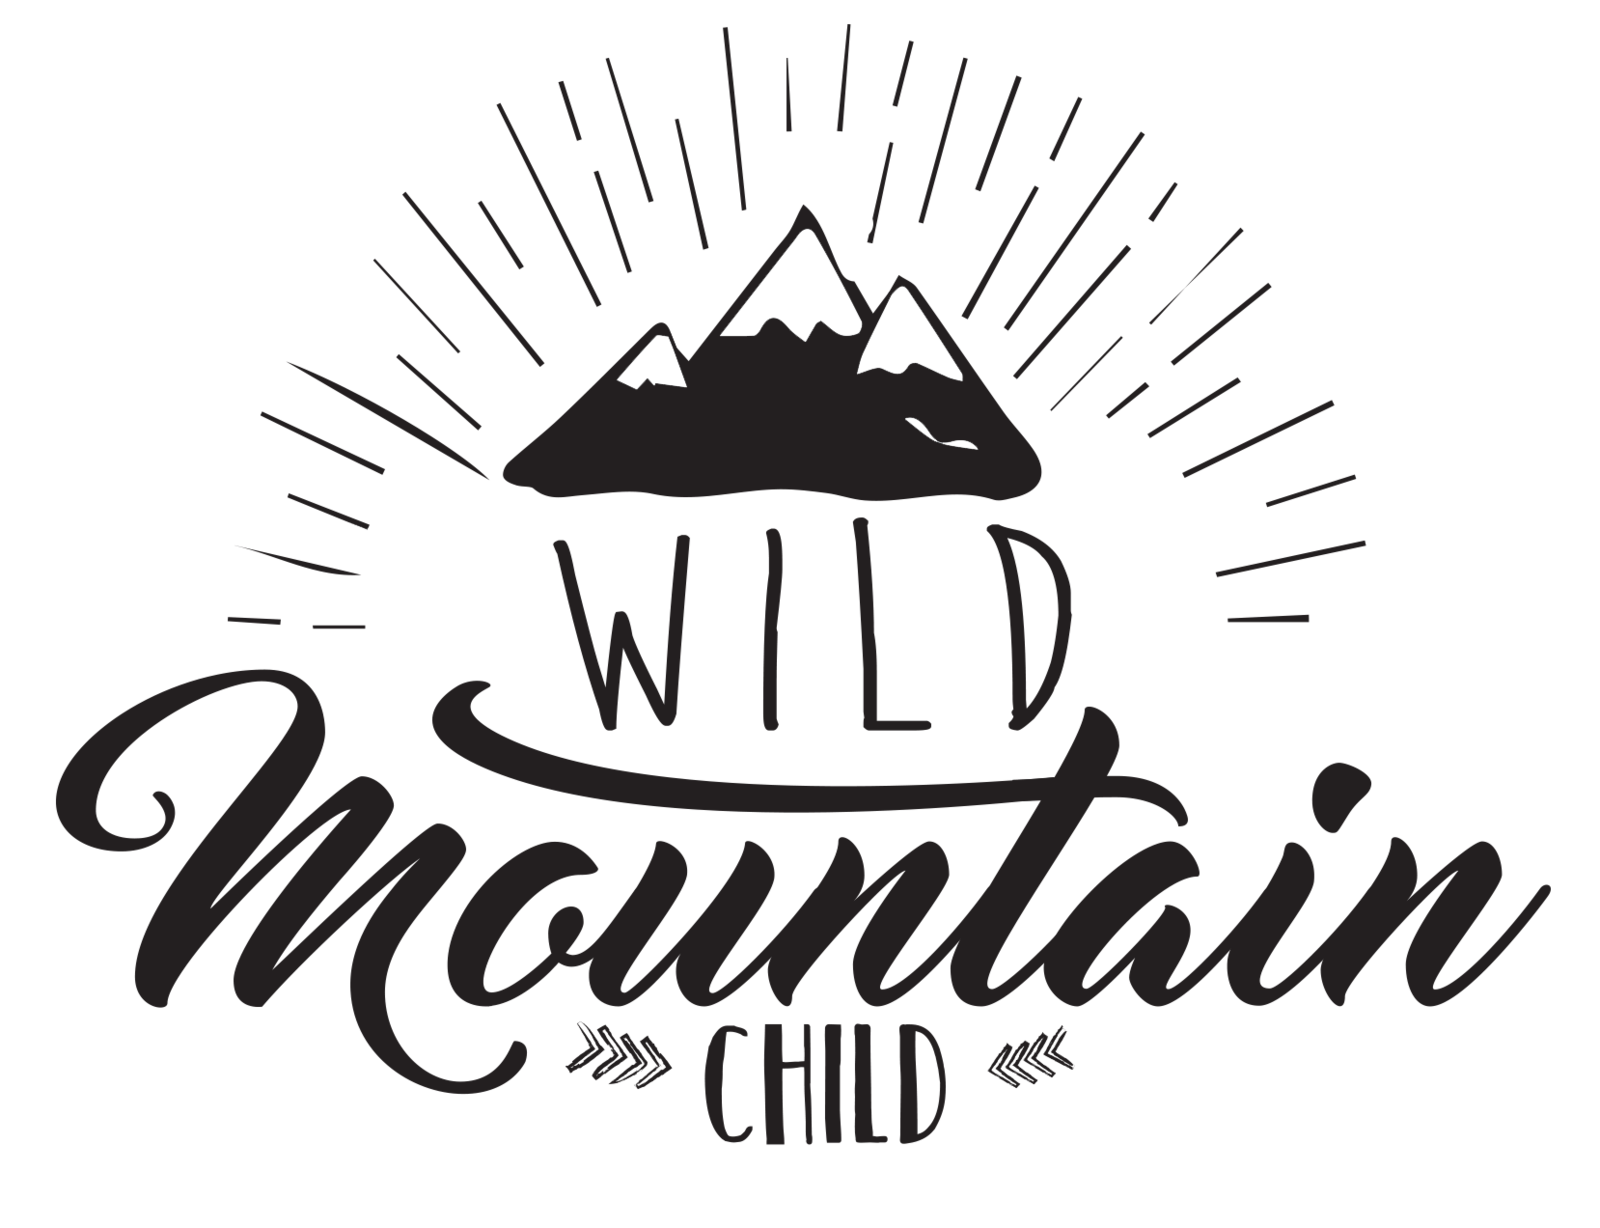 Wild Mountain Child